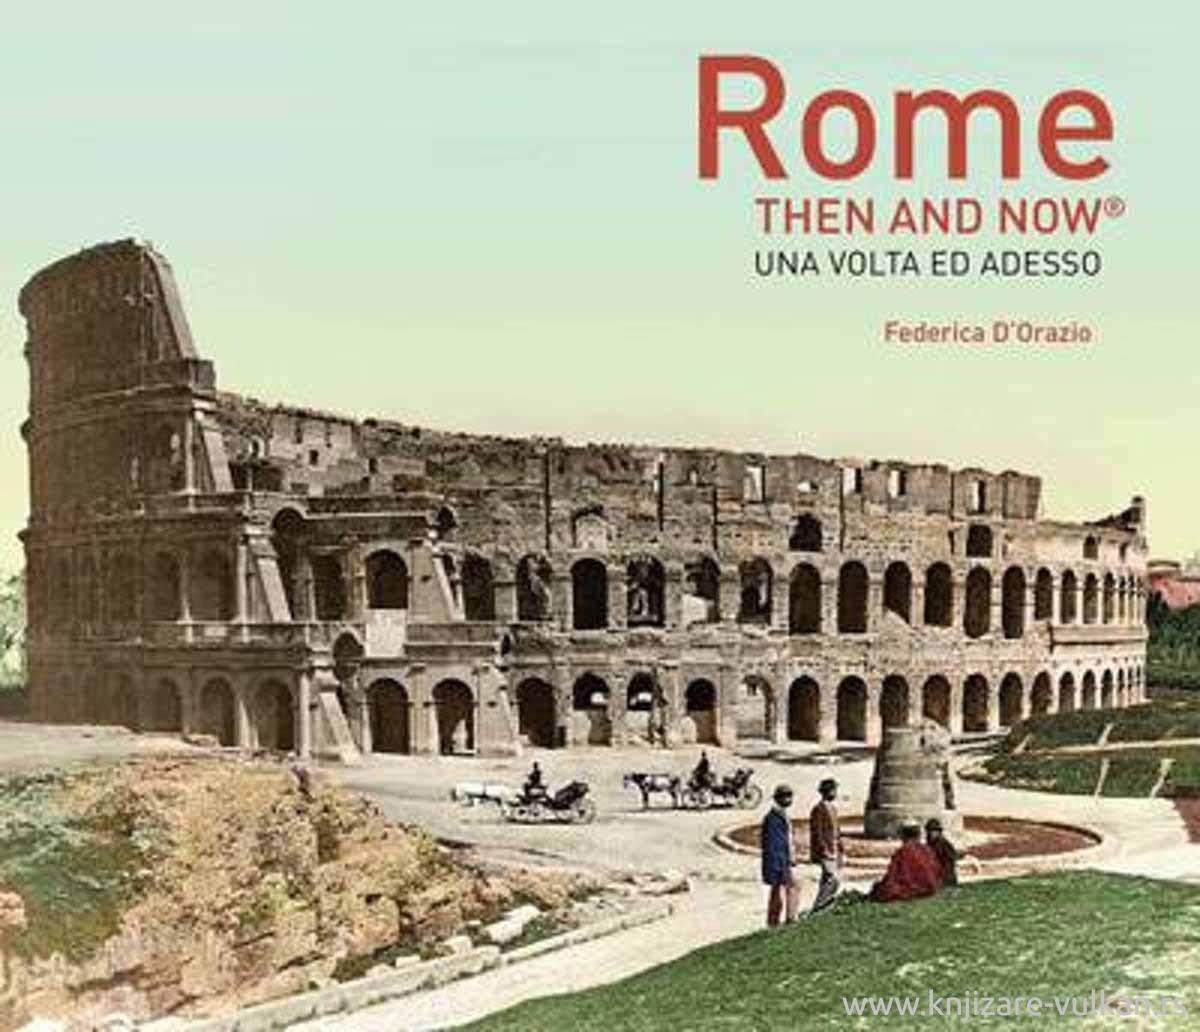 ROME THEN AND NOW